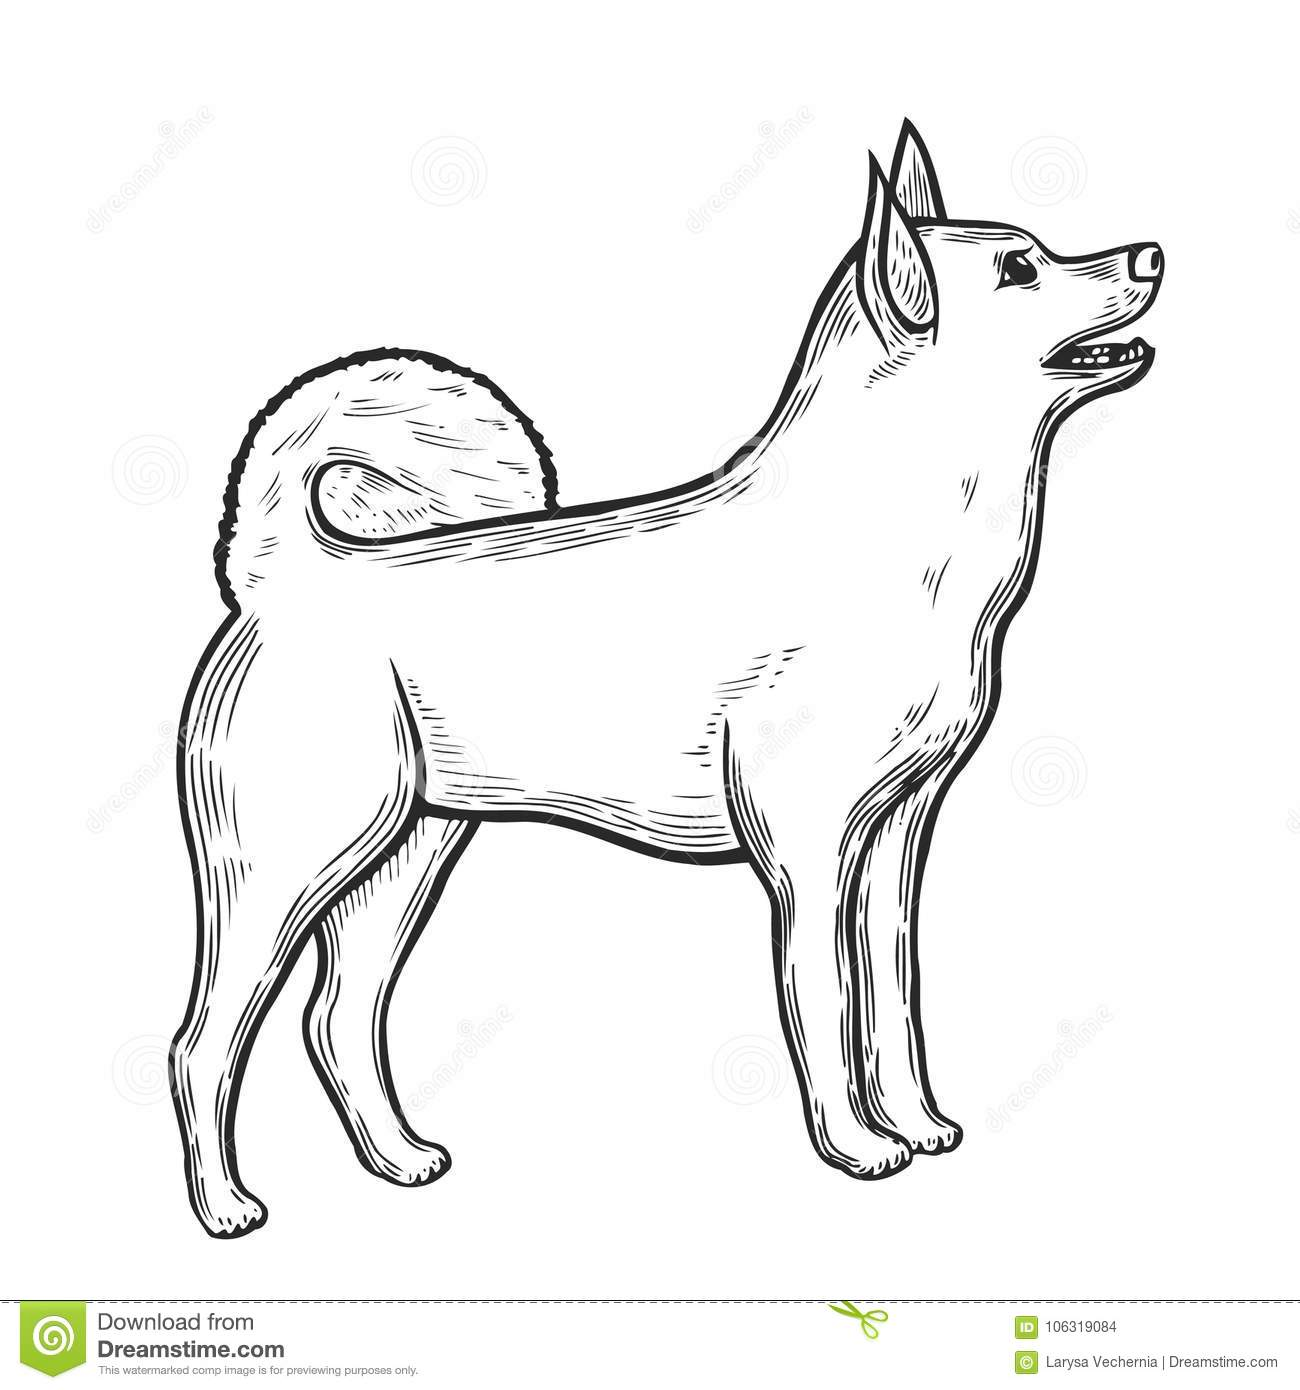 Dog In Sketch Style Stock Vector Illustration Of Hand 106319084